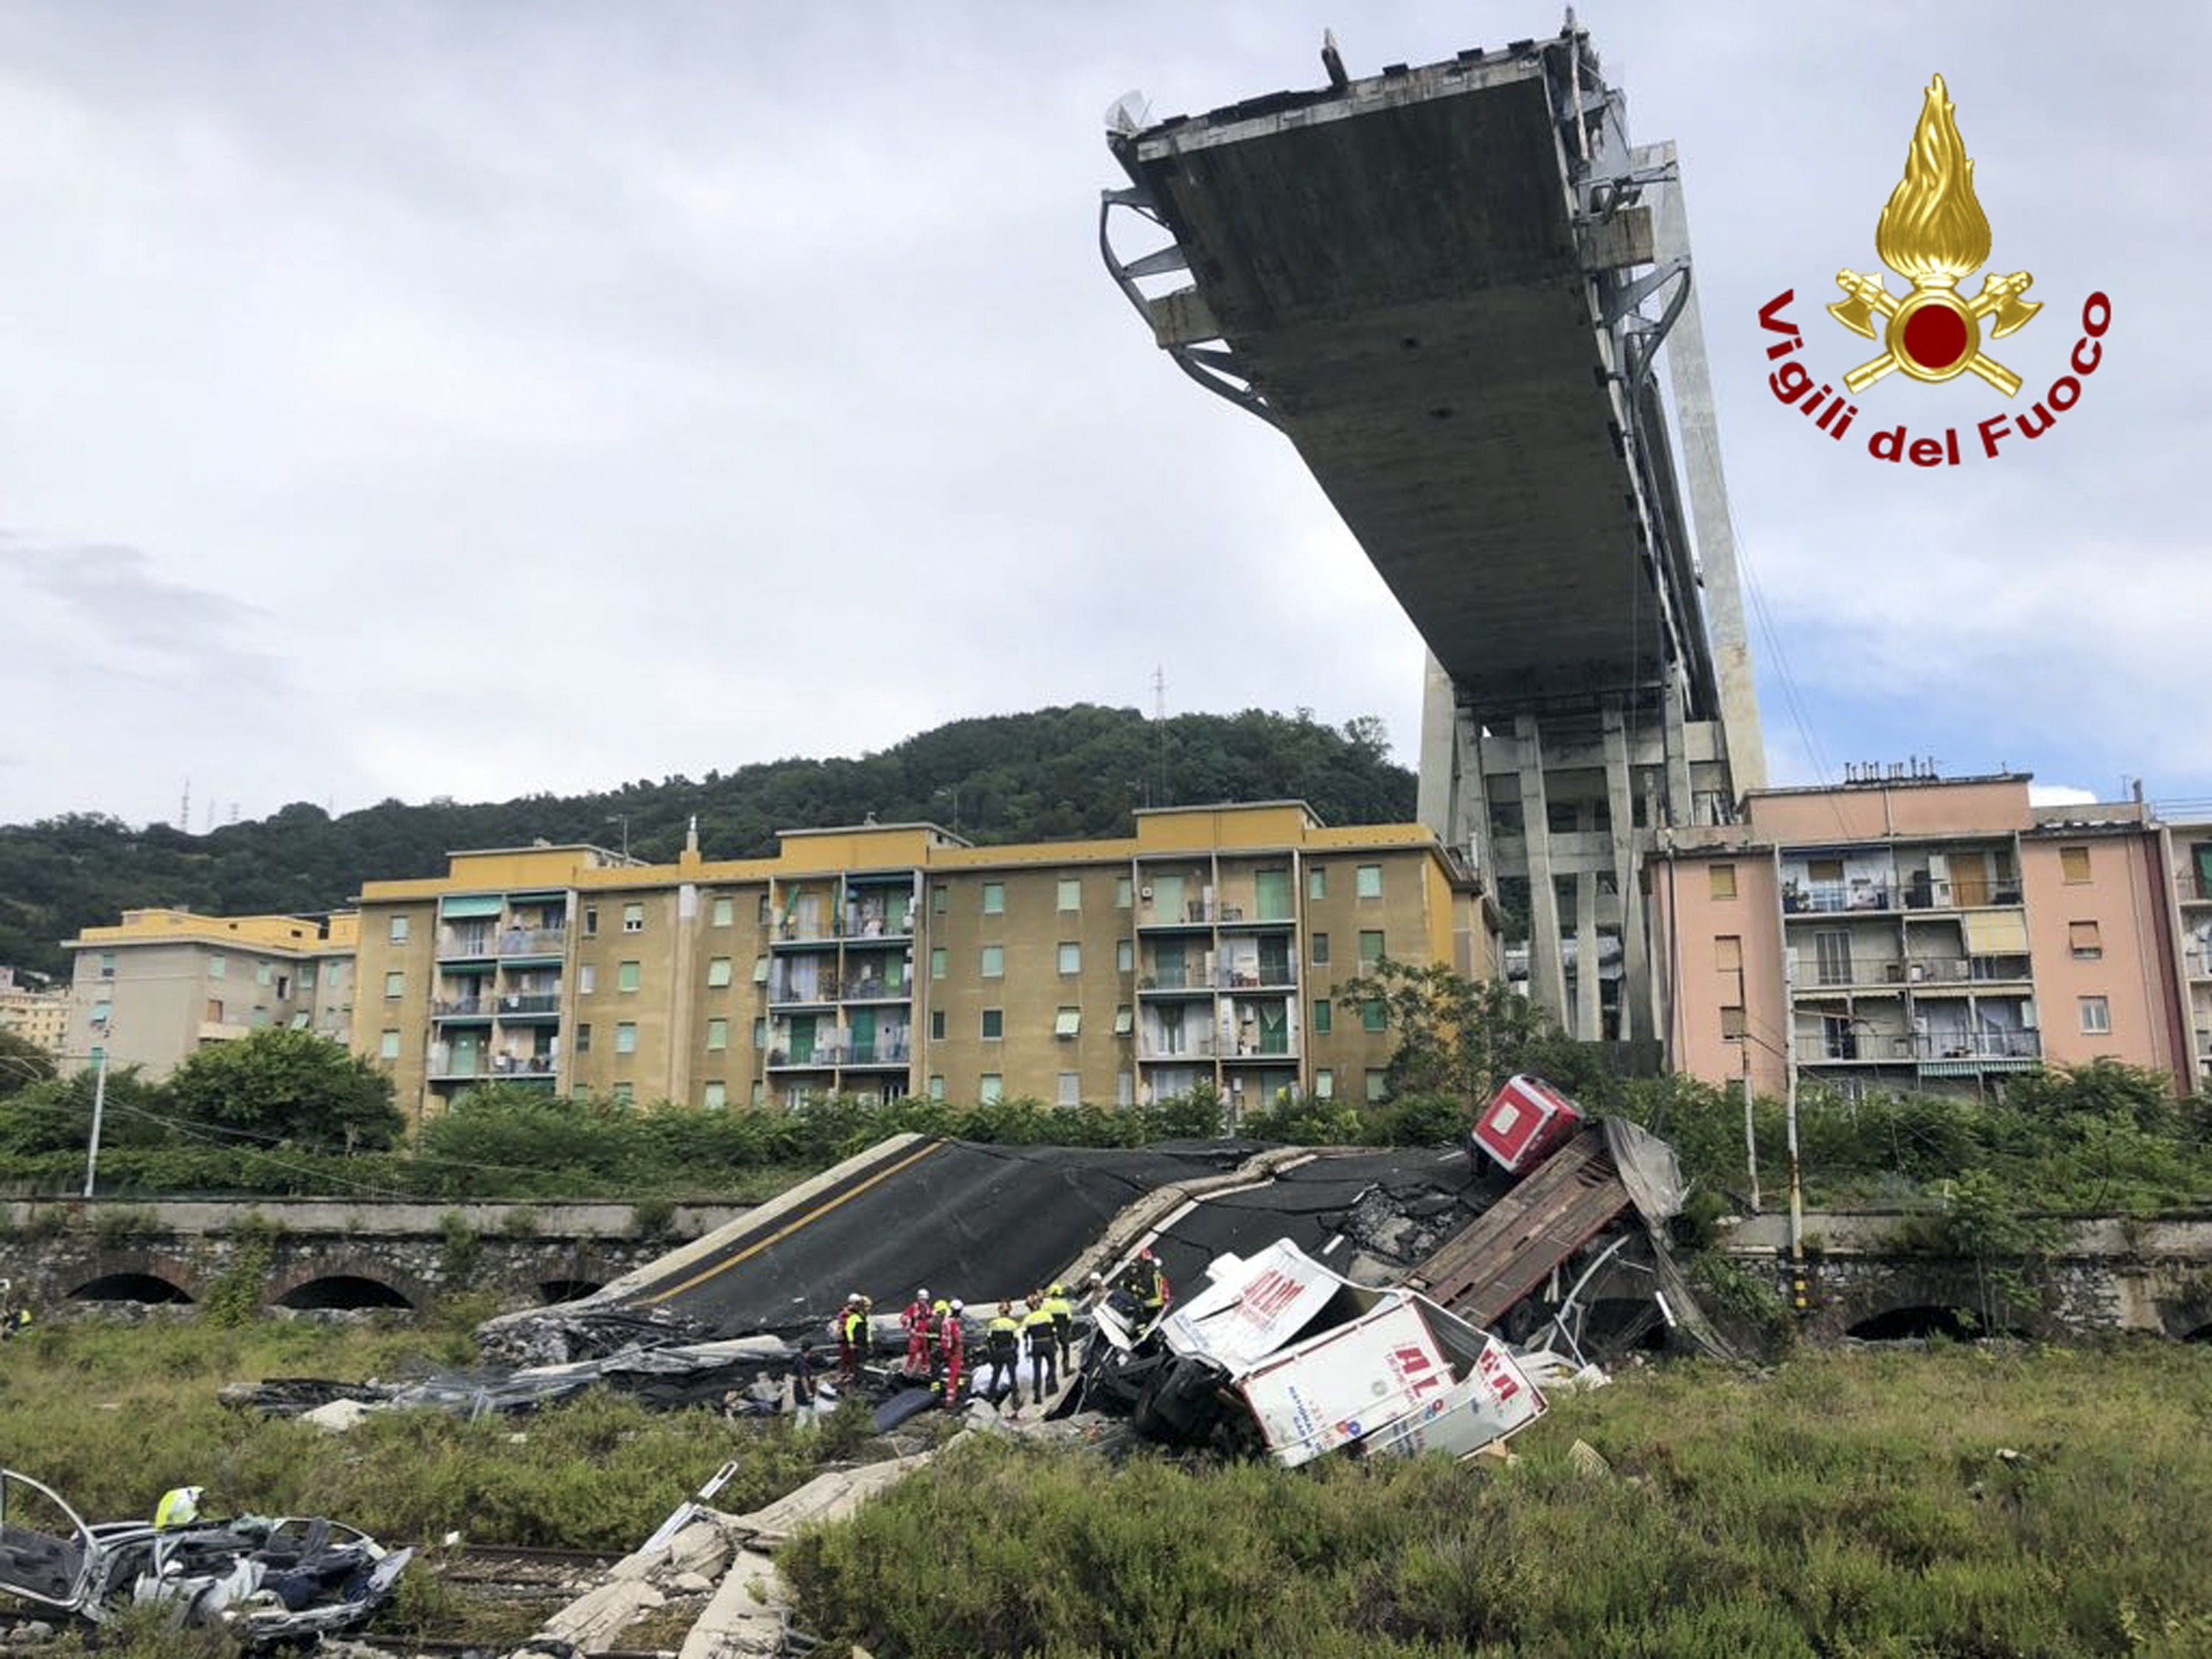 <div class='meta'><div class='origin-logo' data-origin='none'></div><span class='caption-text' data-credit='Vigili Del Fuoco via AP'>In this photo released by the Italian firefighters, firefighters work among the rubble of the collapsed Morandi highway bridge in Genoa, northern Italy, Tuesday, Aug. 14, 2018.</span></div>